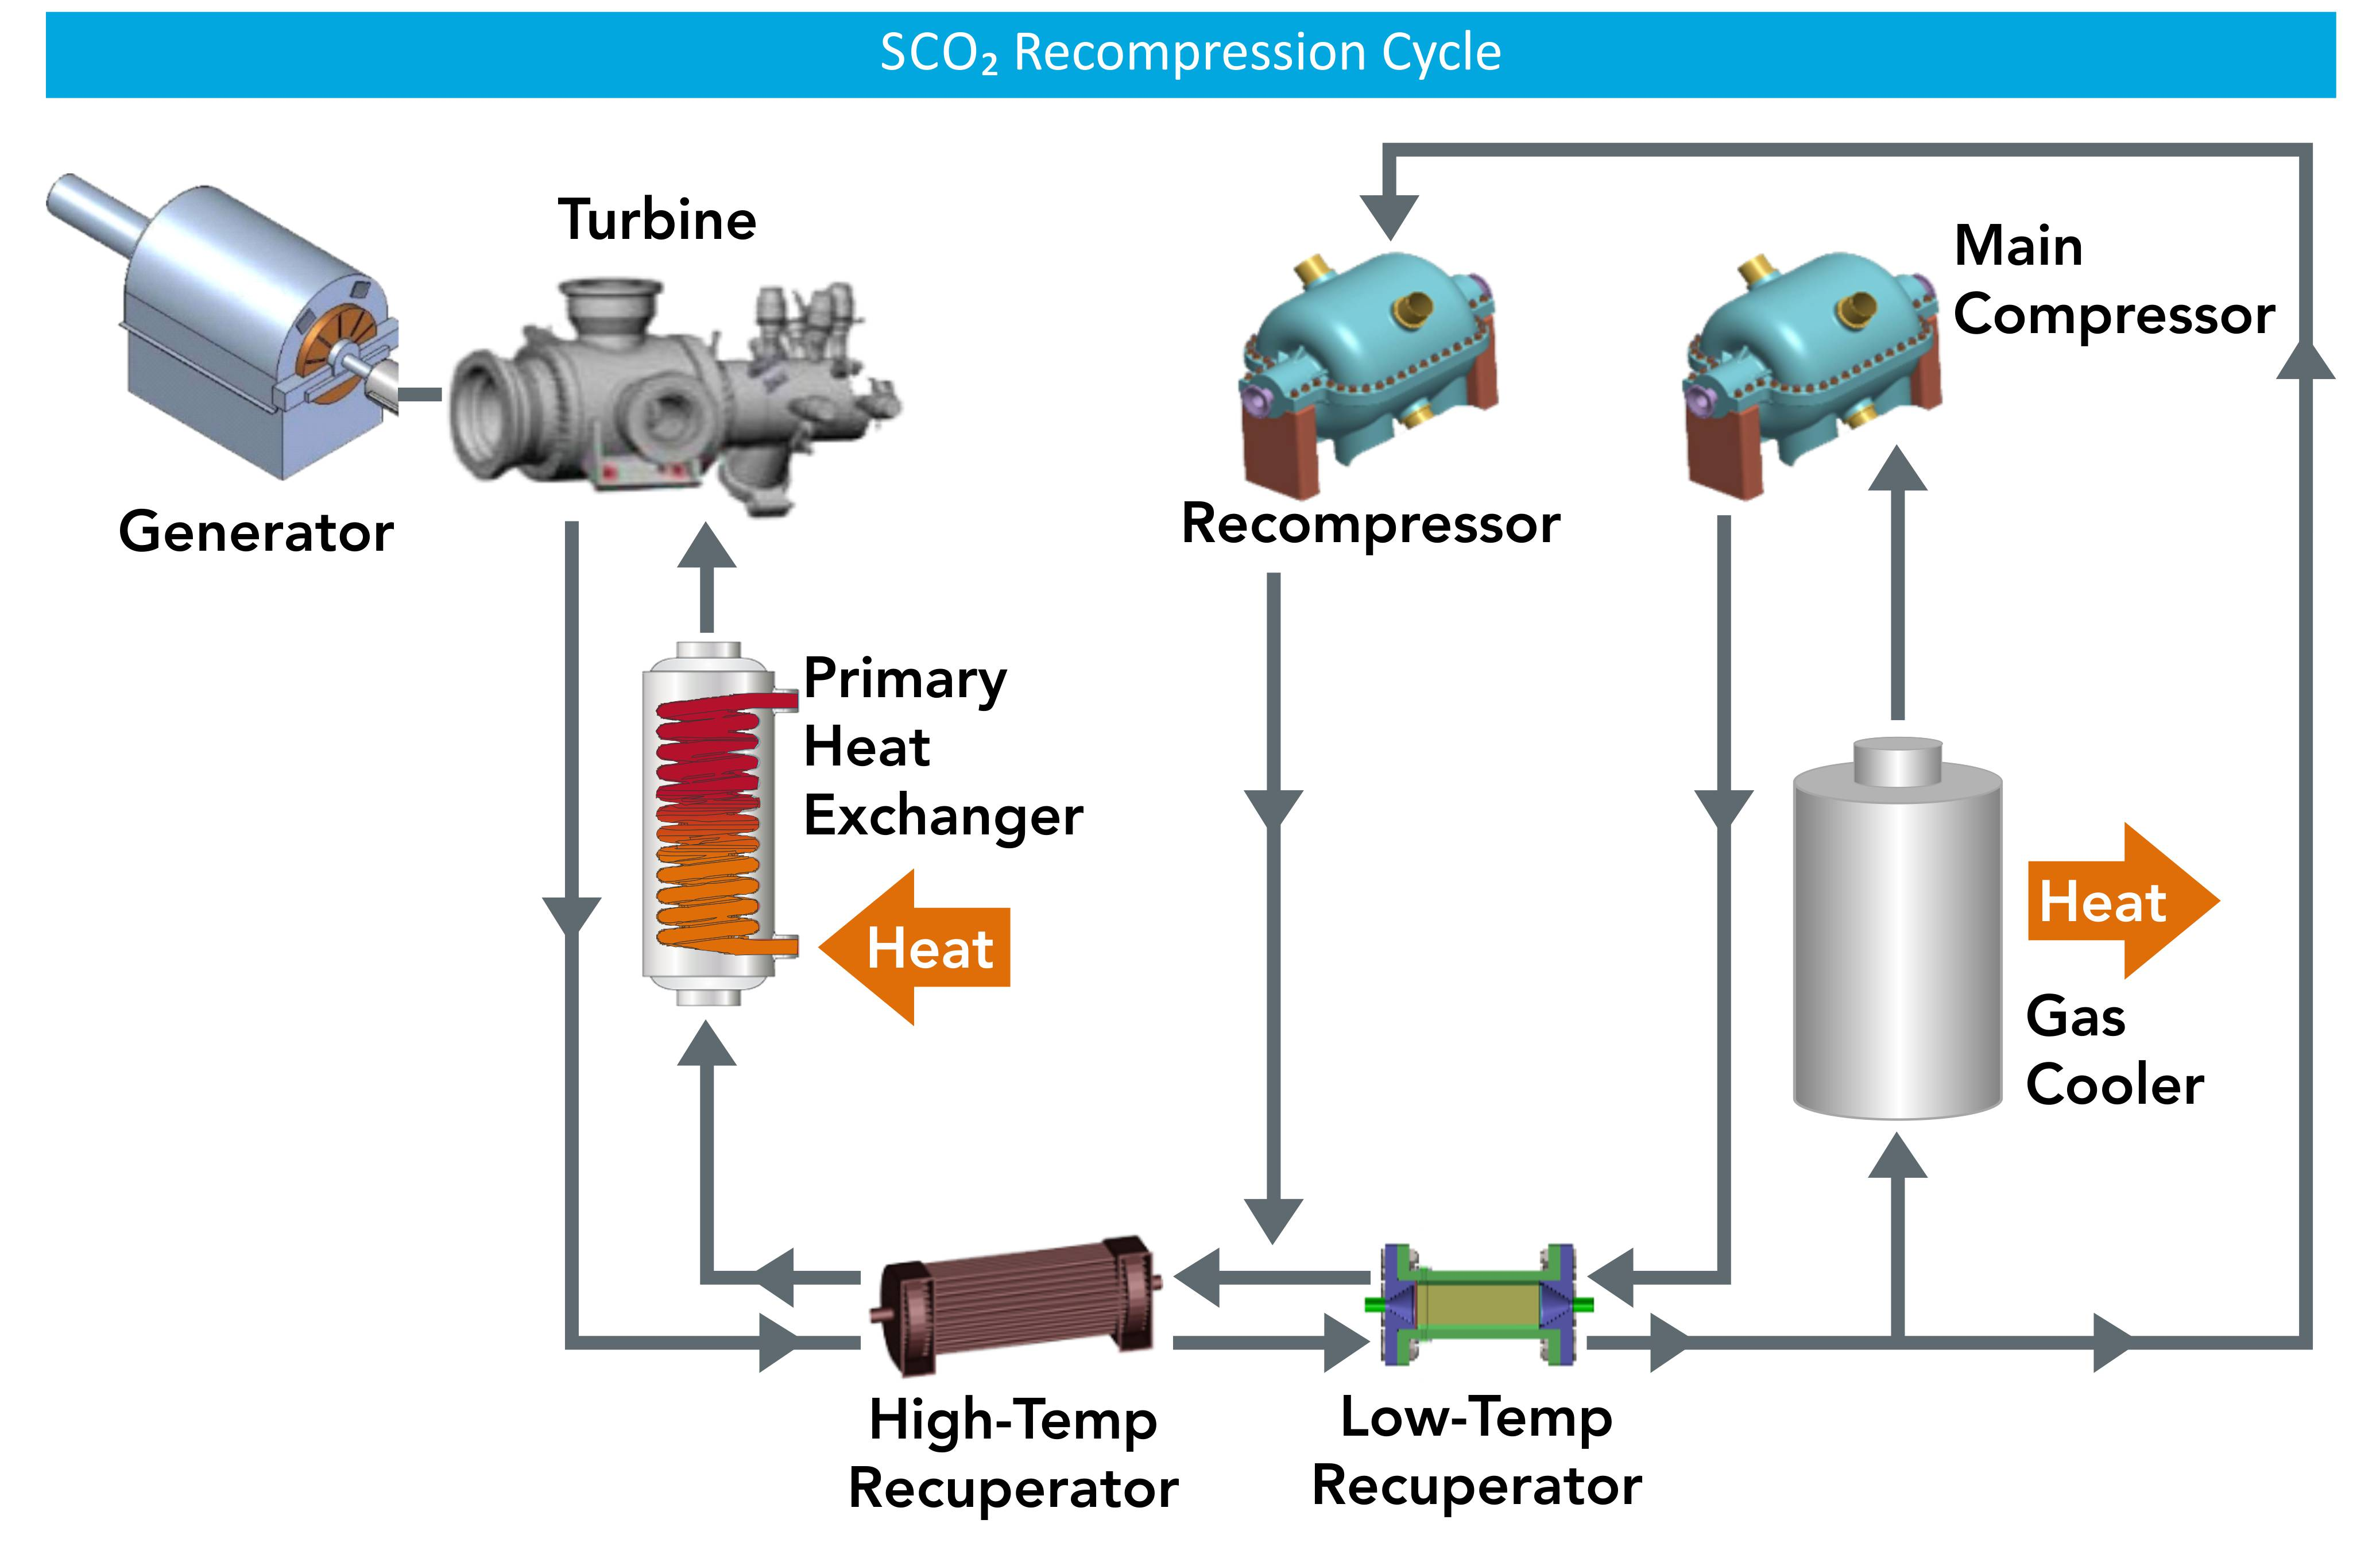 Engineering-scale sCO2 recompression closed Brayton cycle at Sandia National Labs